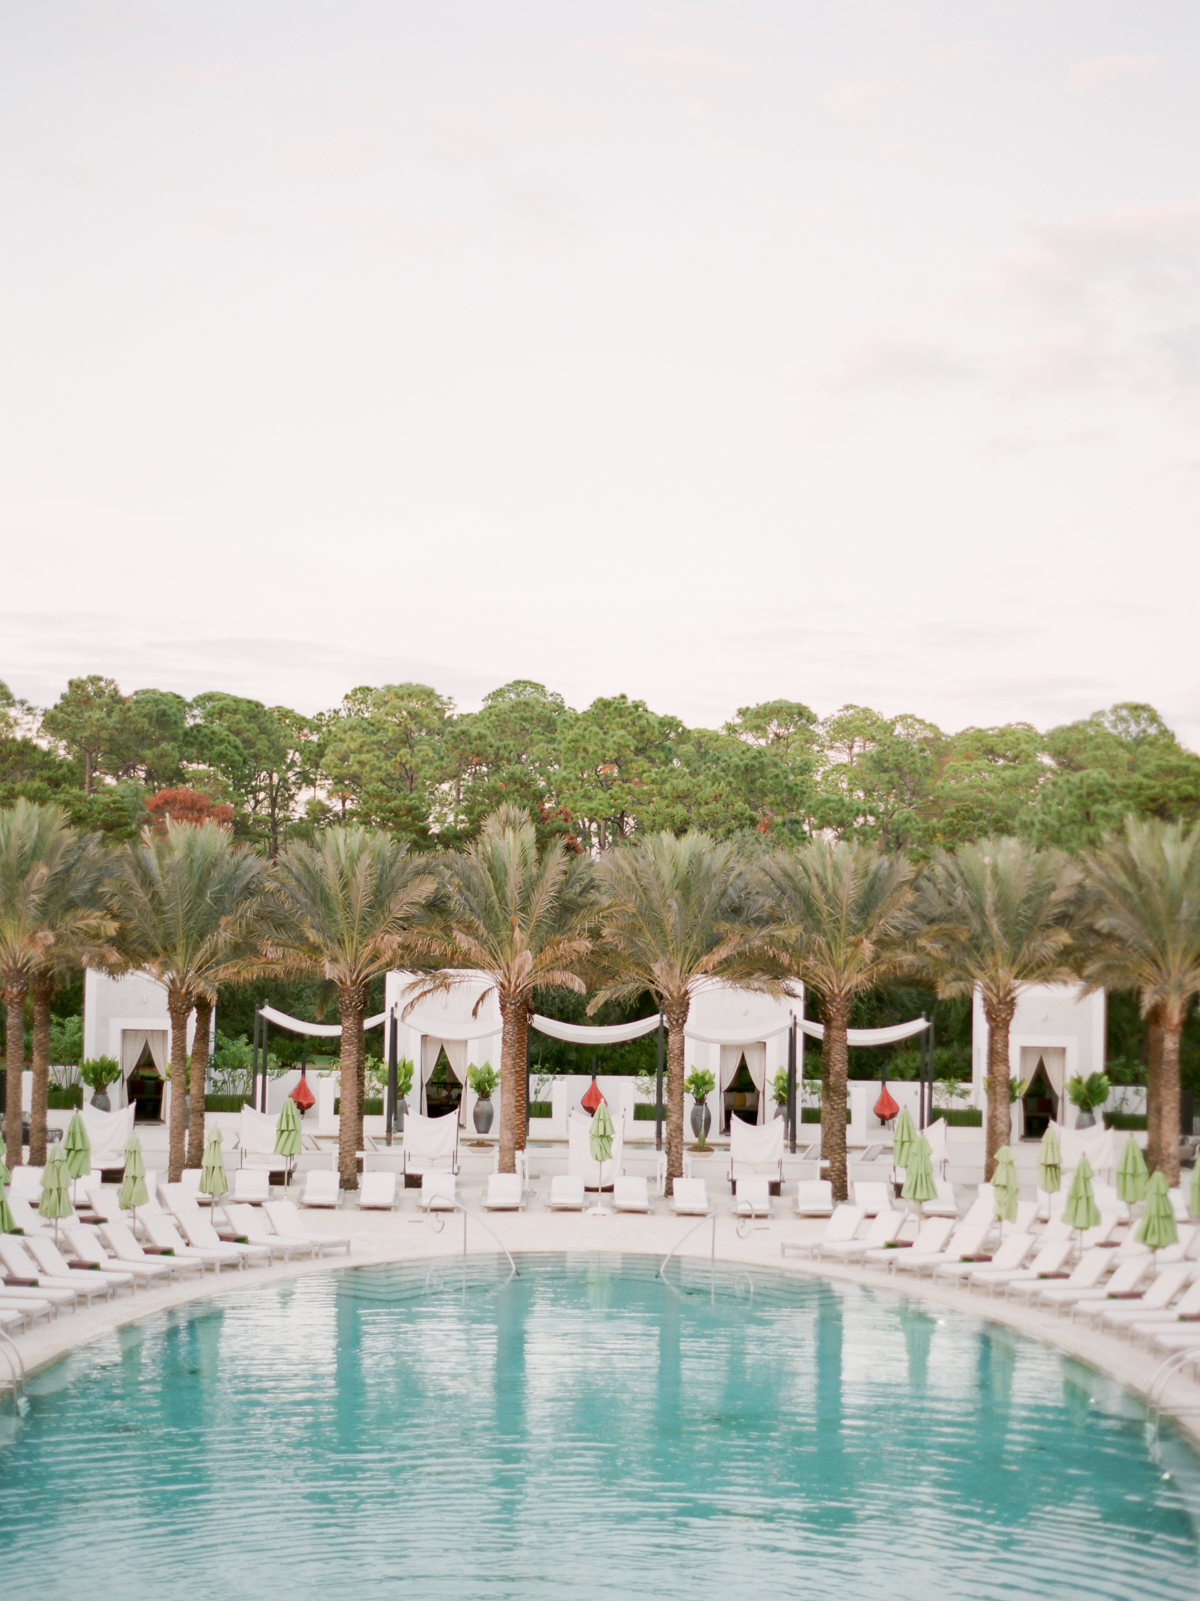 alysbeach-wedding-caliza-kayliebpoplinphotography